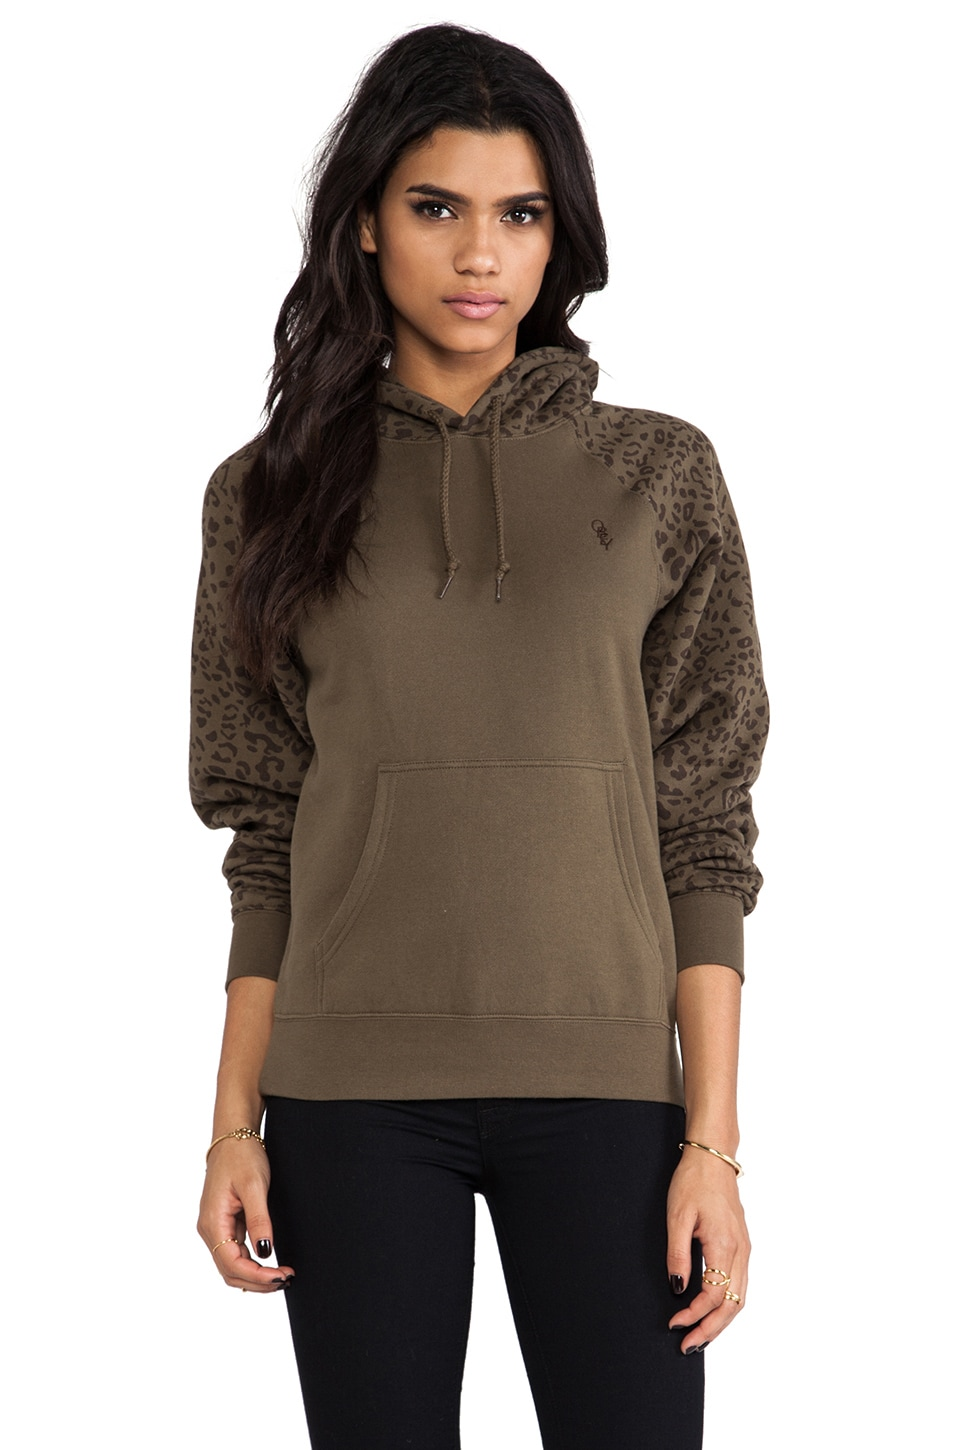 Obey Highland Sweatshirt in Army & Leopard